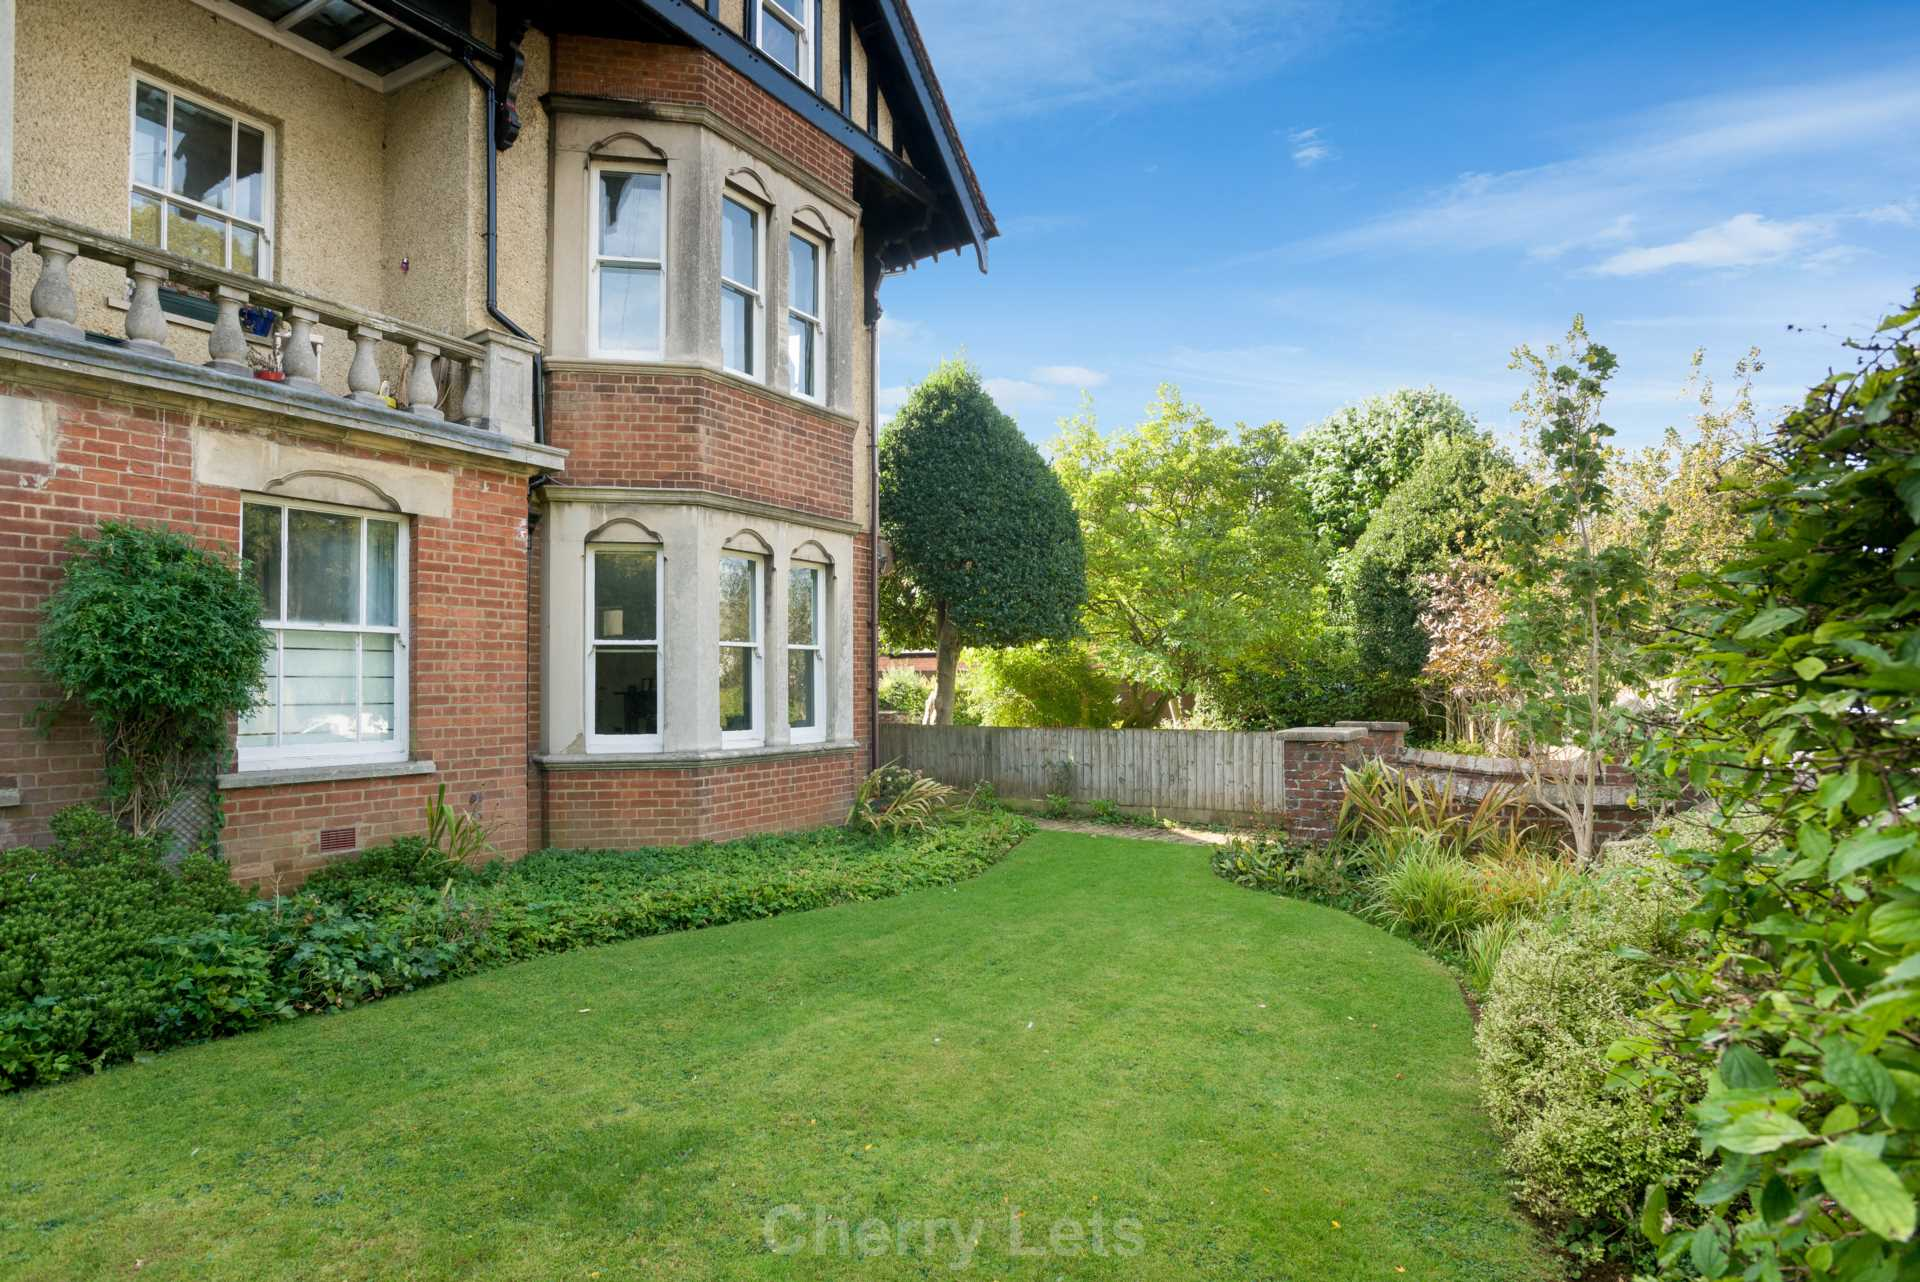 1 bed flat to rent in Bloxham Road, Banbury, OX16  - Property Image 1